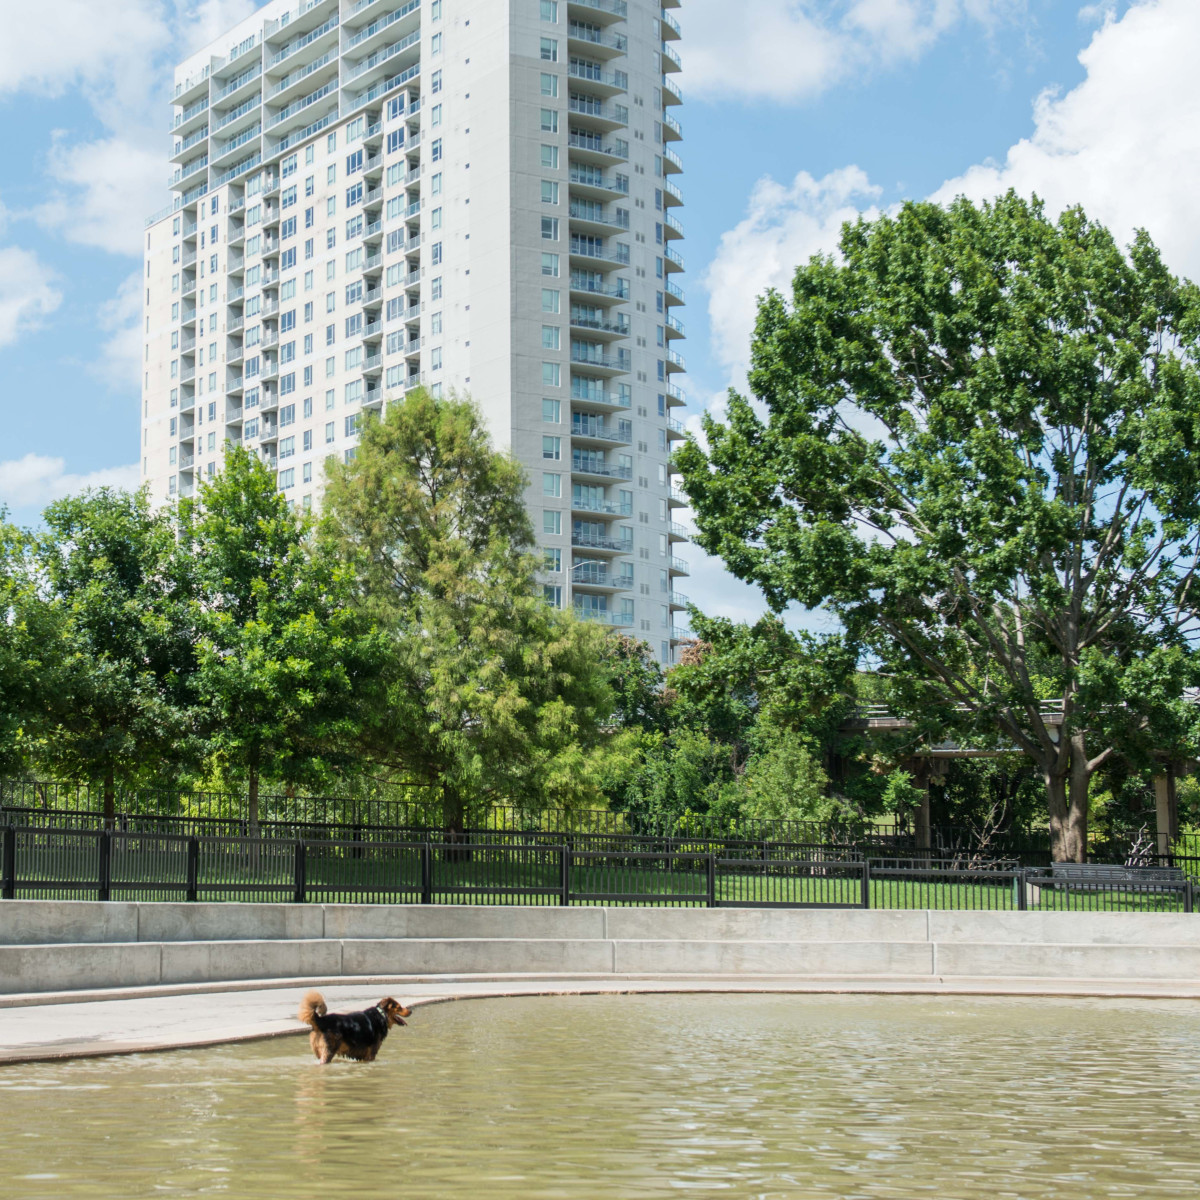 Johnny Steele Dog Park Allen Parkway dog in water